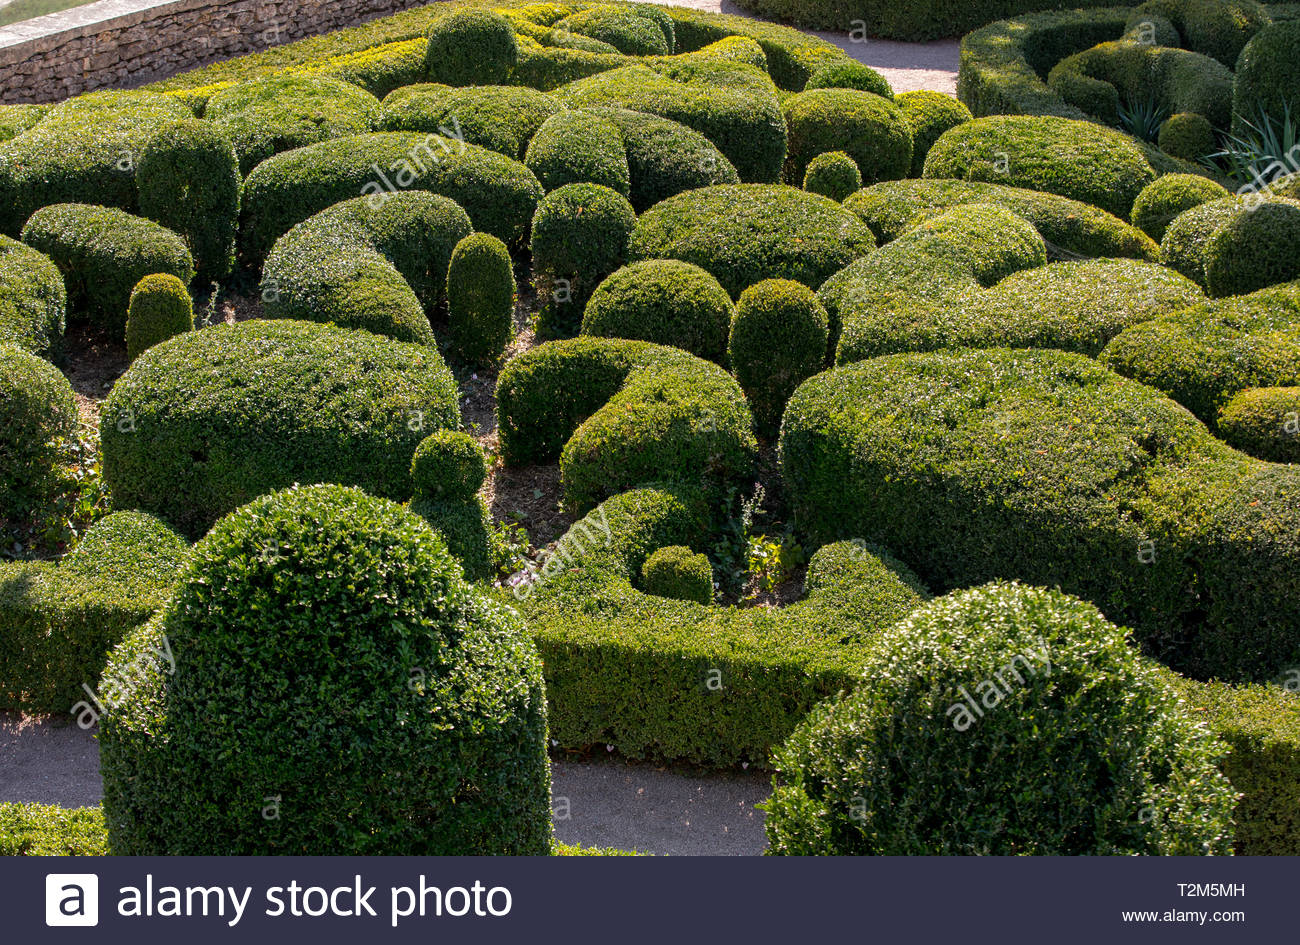 topiary in the gardens of the jardins de marqueyssac in the dordogne region of france T2M5MH